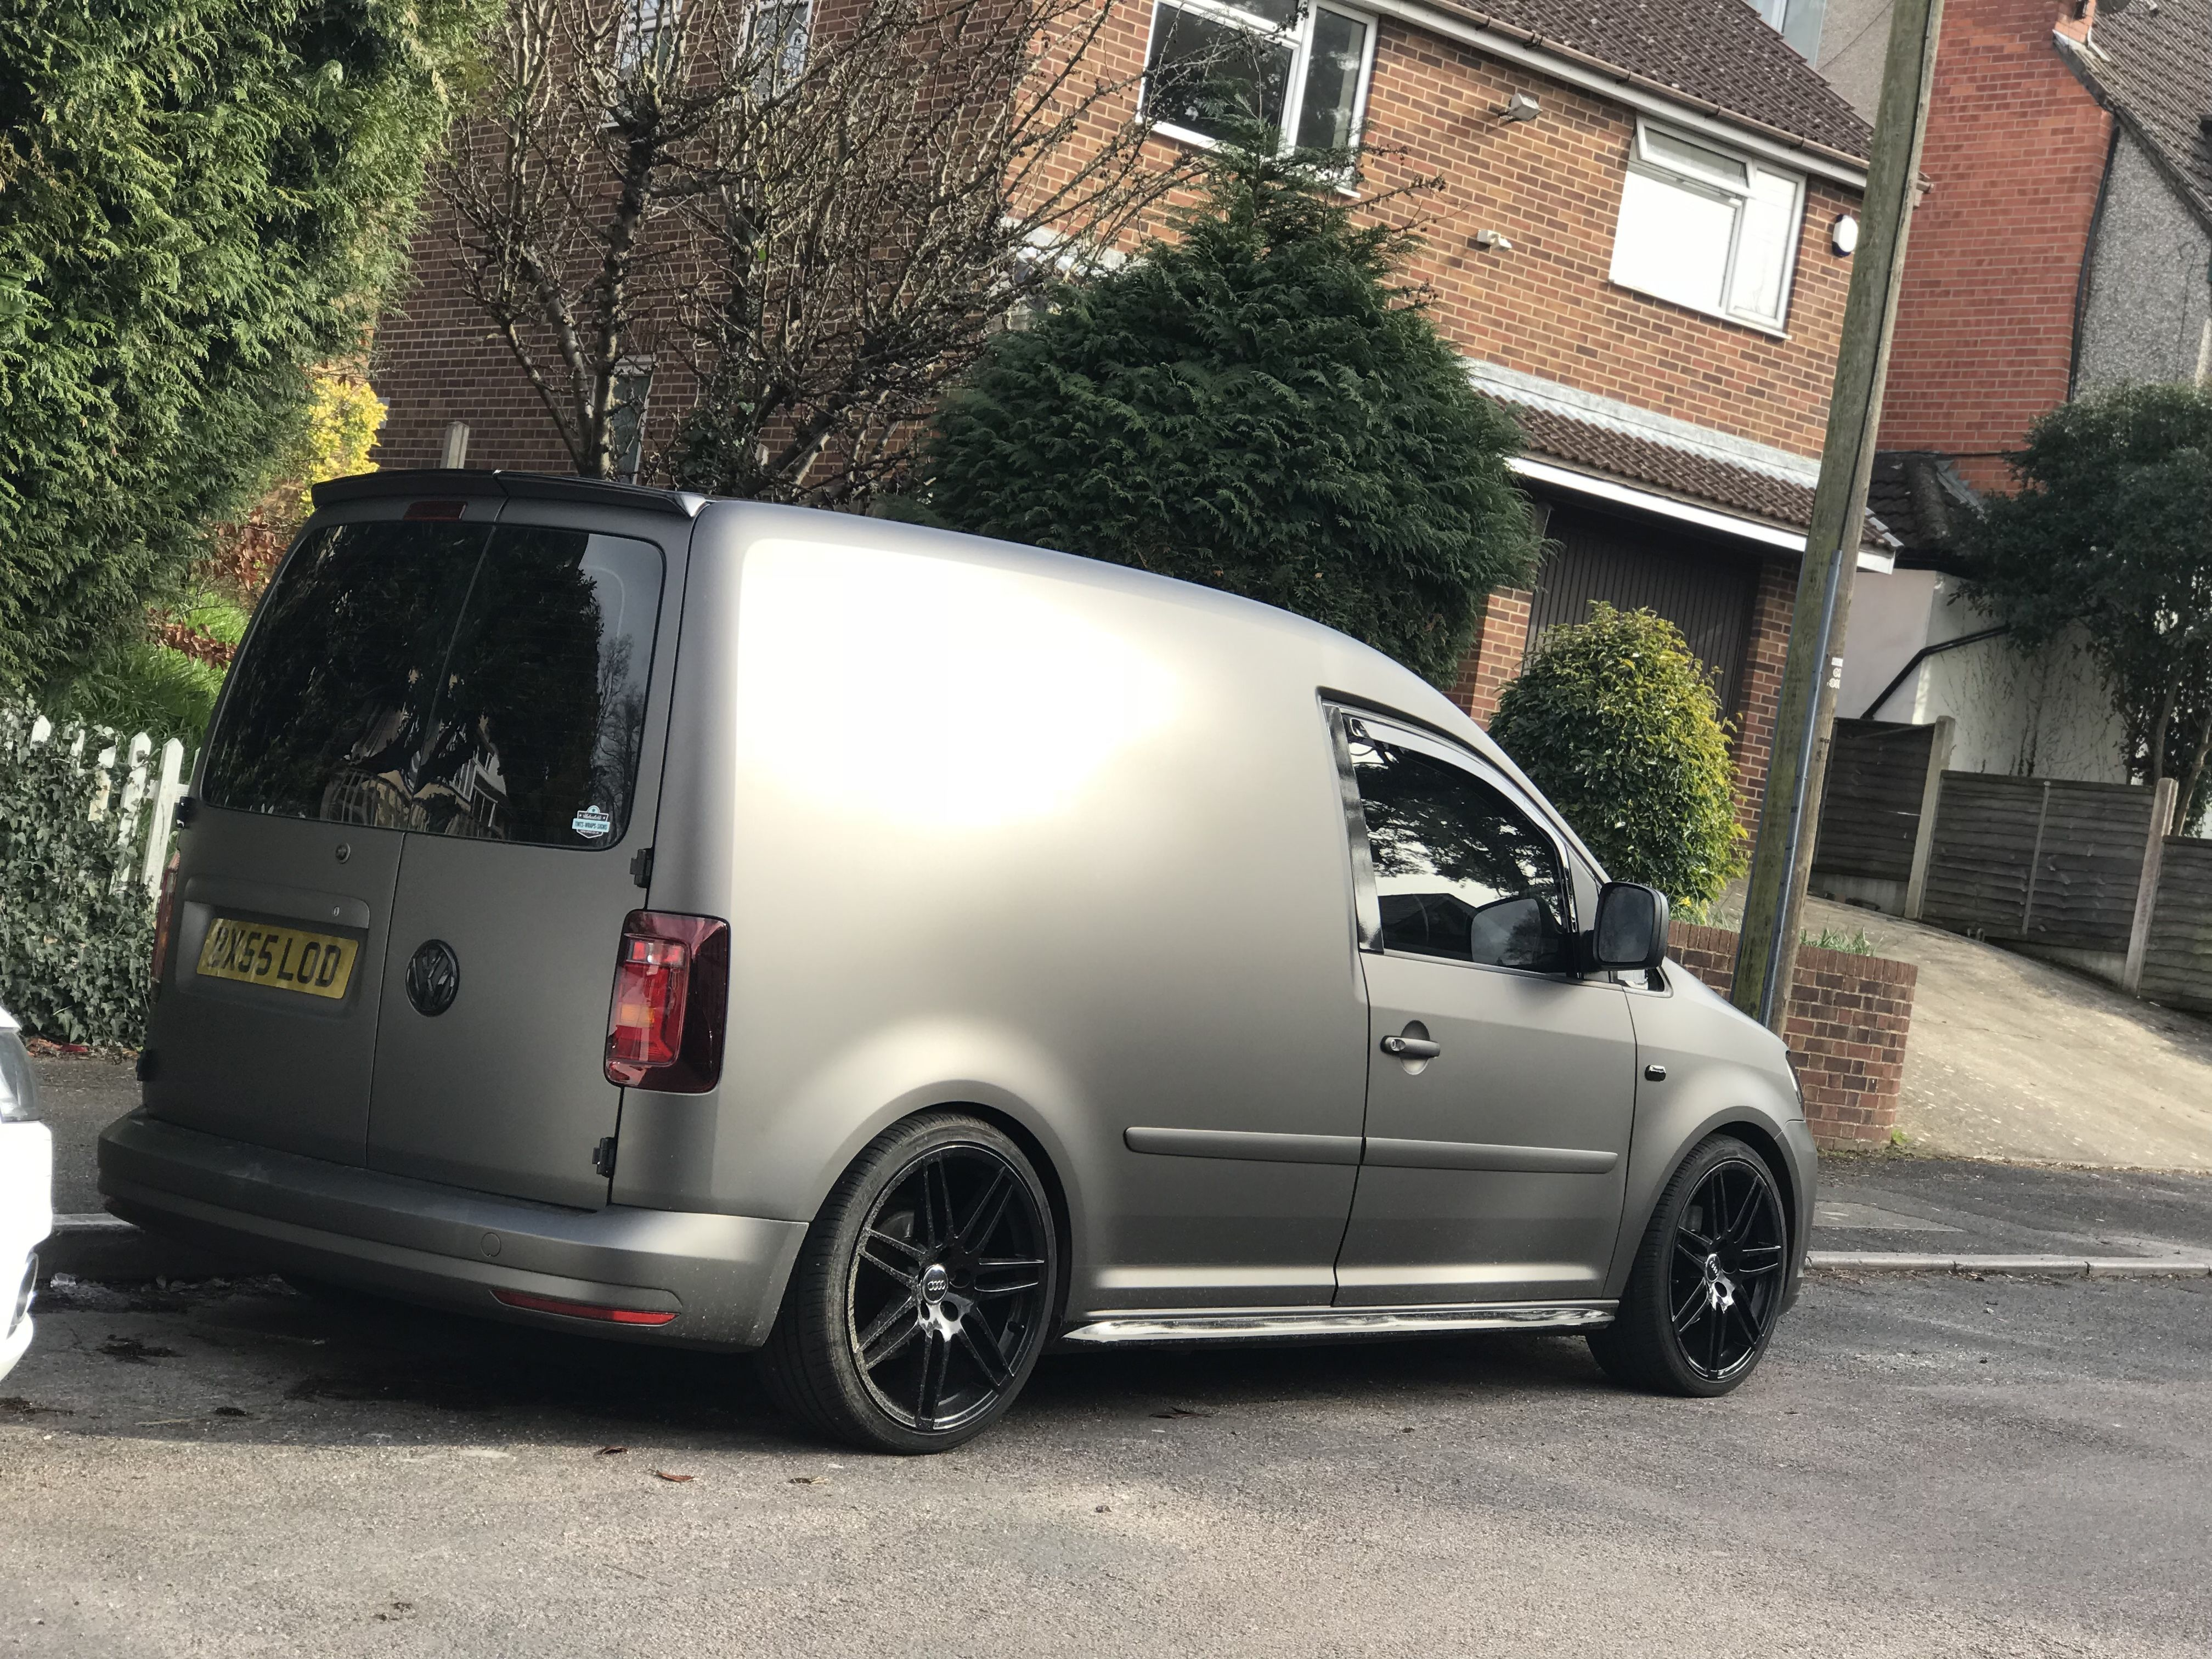 vw caddy 2k 3m matt charcoal met wrap caddy und t6. Black Bedroom Furniture Sets. Home Design Ideas